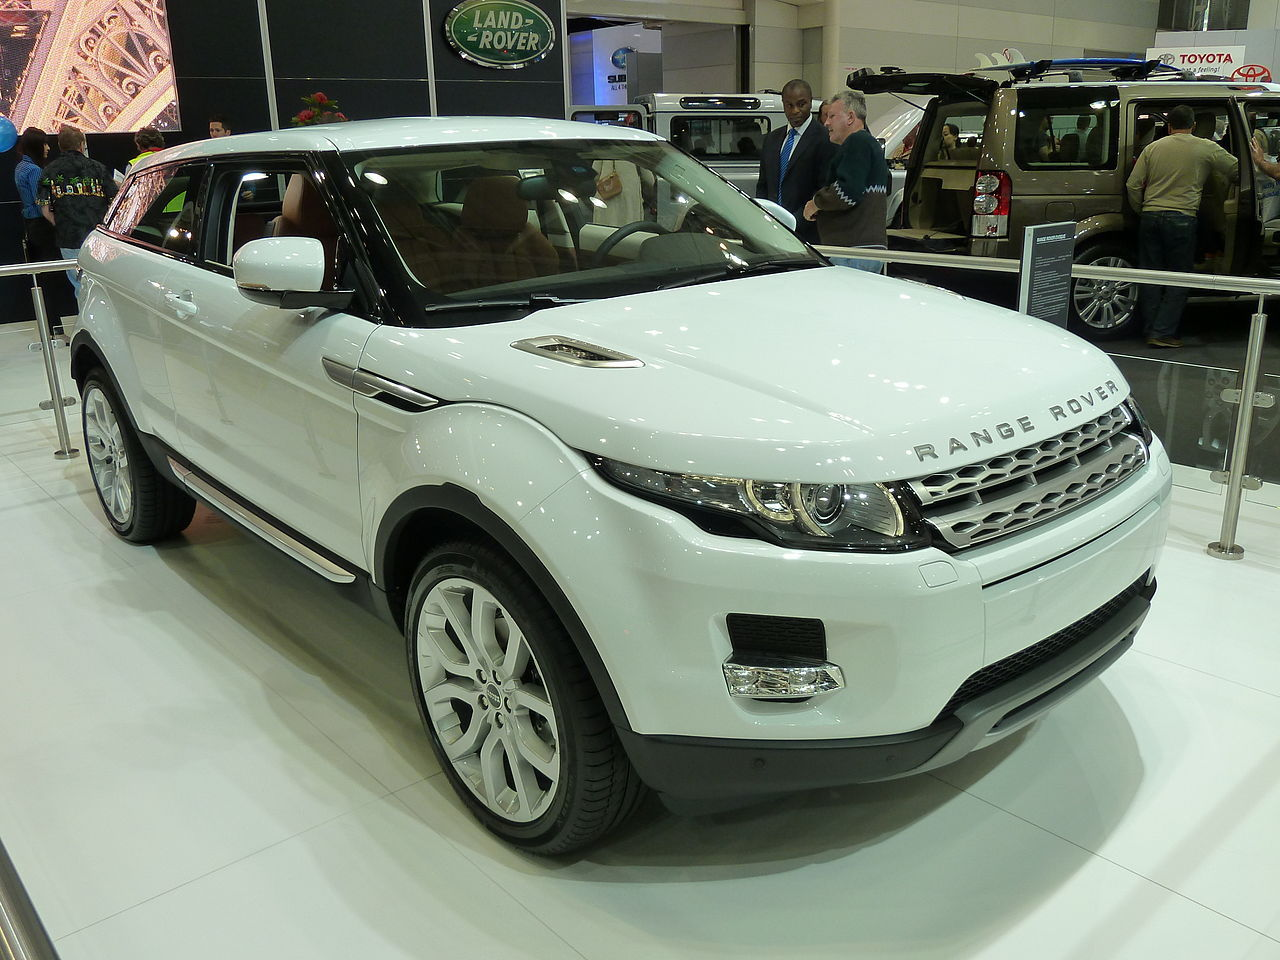 download Range Rover Collection HD Wallpapers